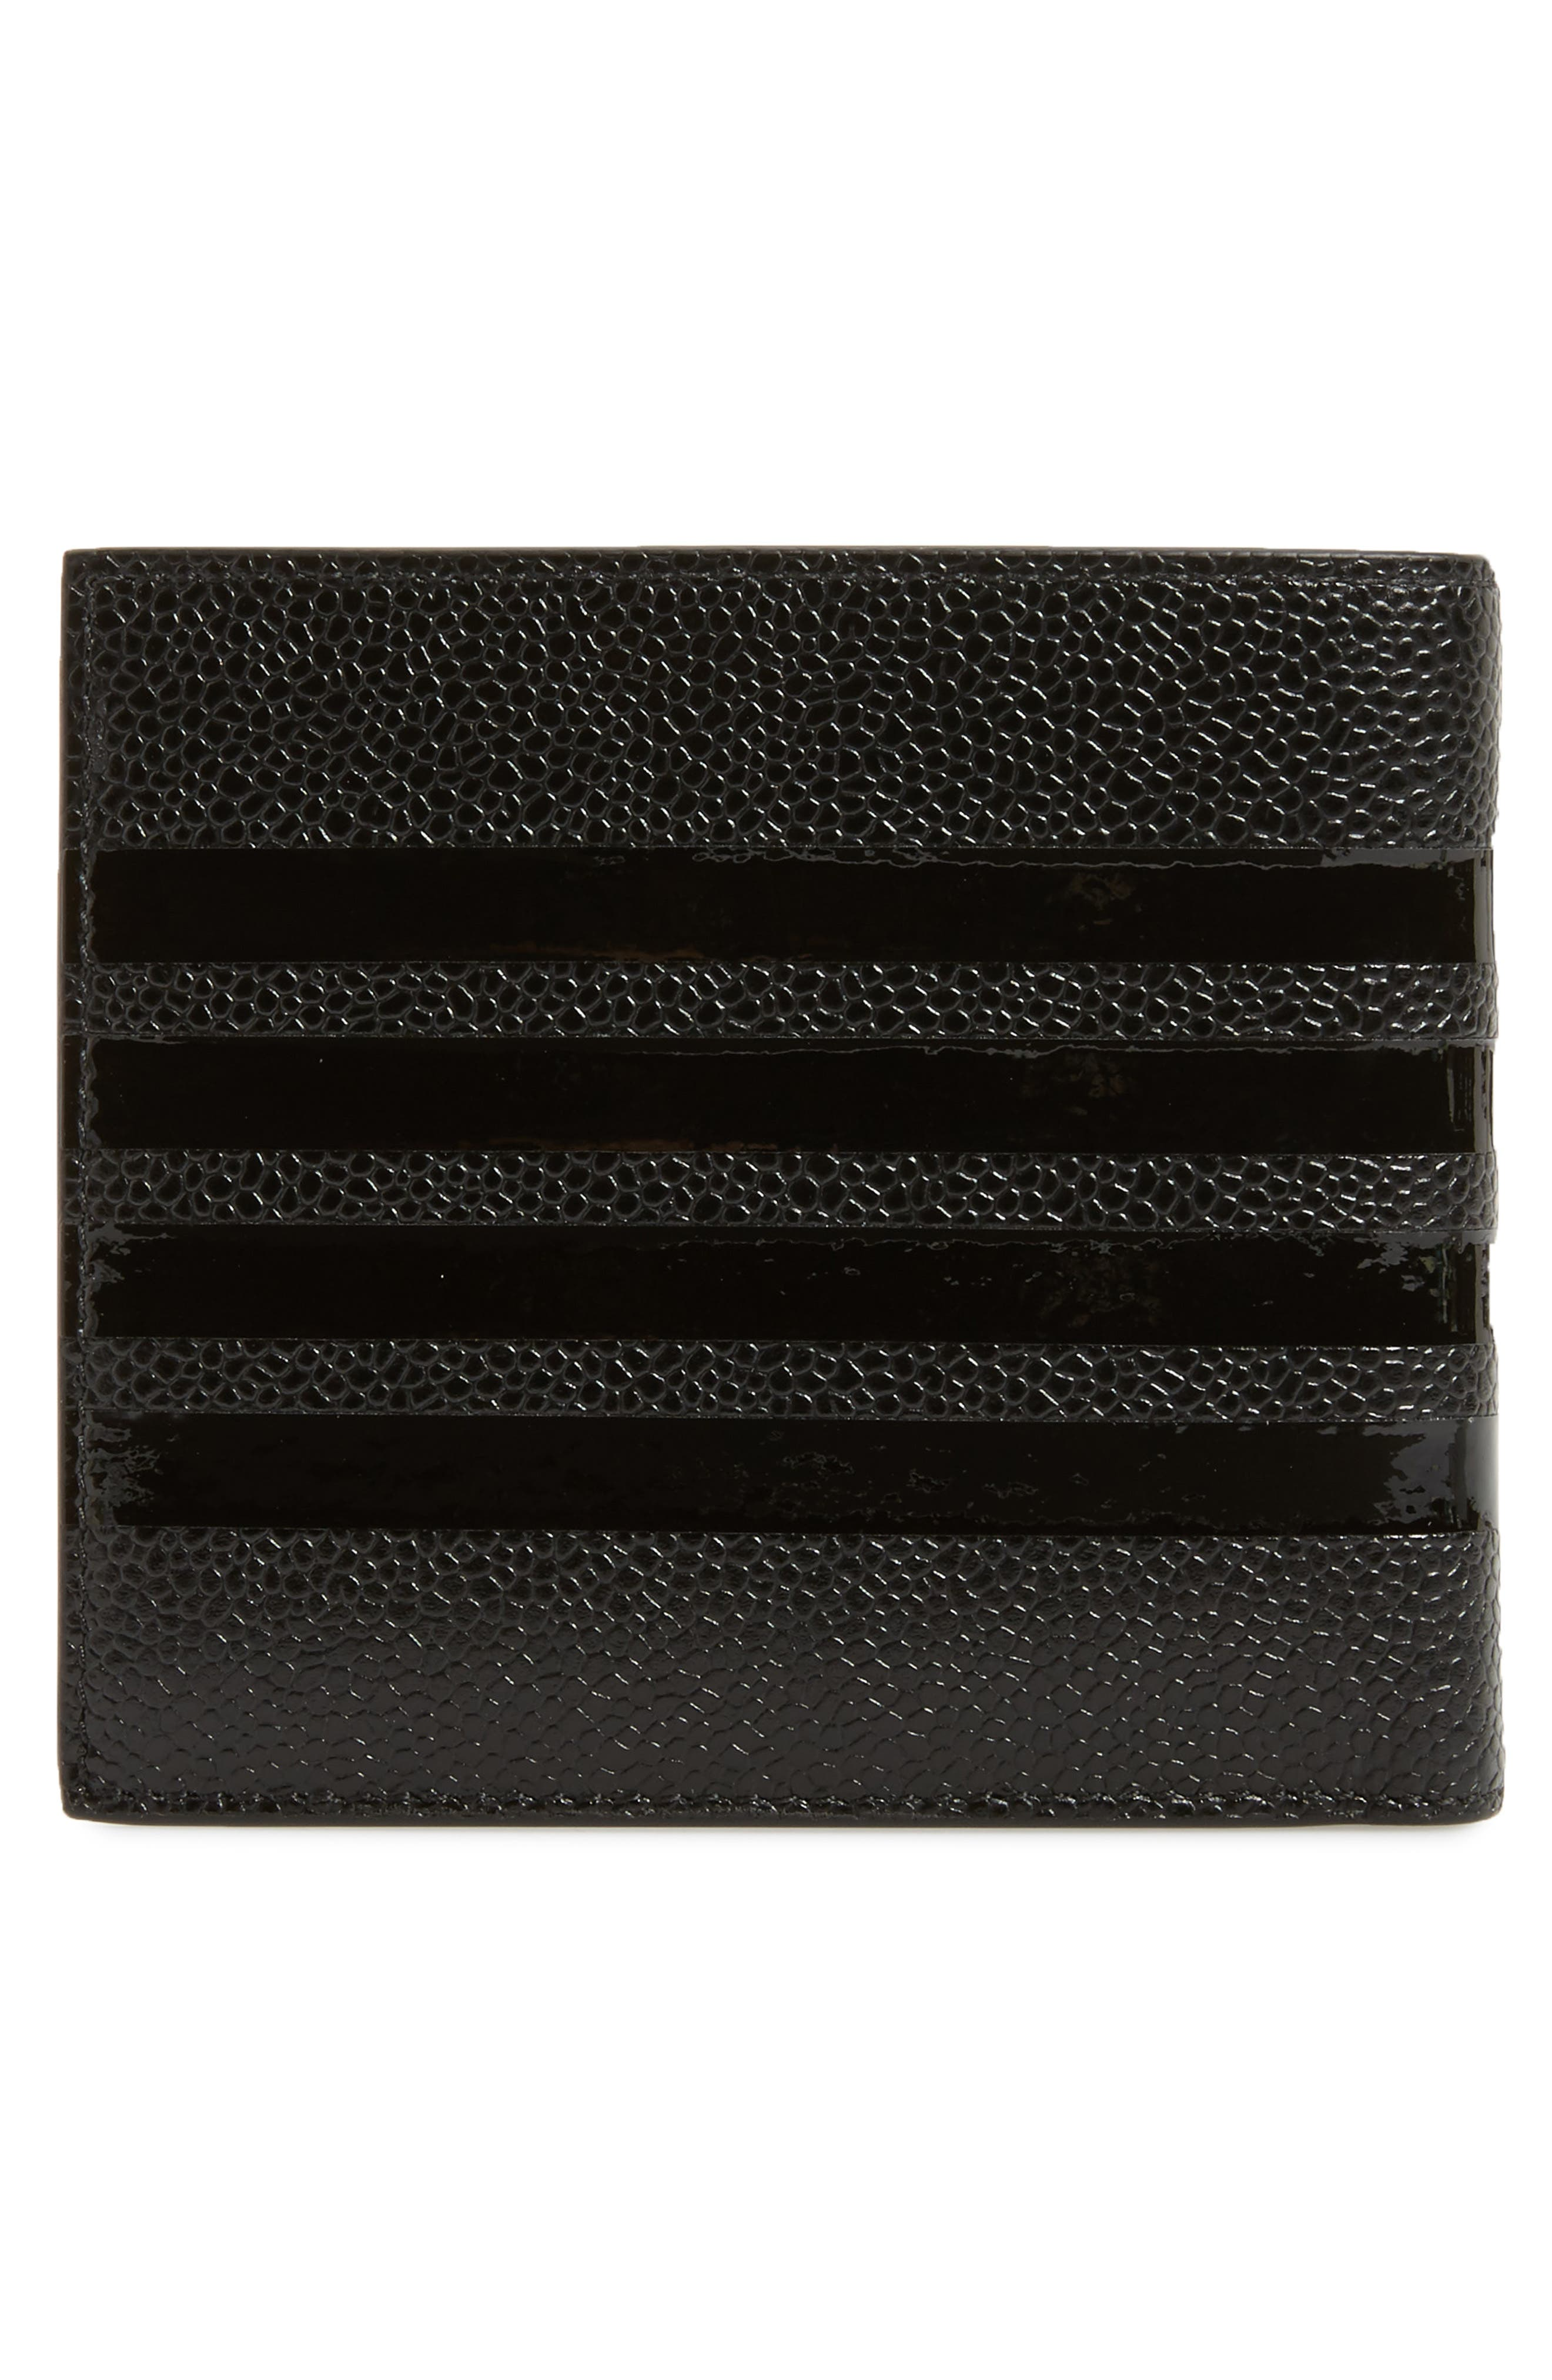 Patent Leather Bifold Wallet,                             Alternate thumbnail 3, color,